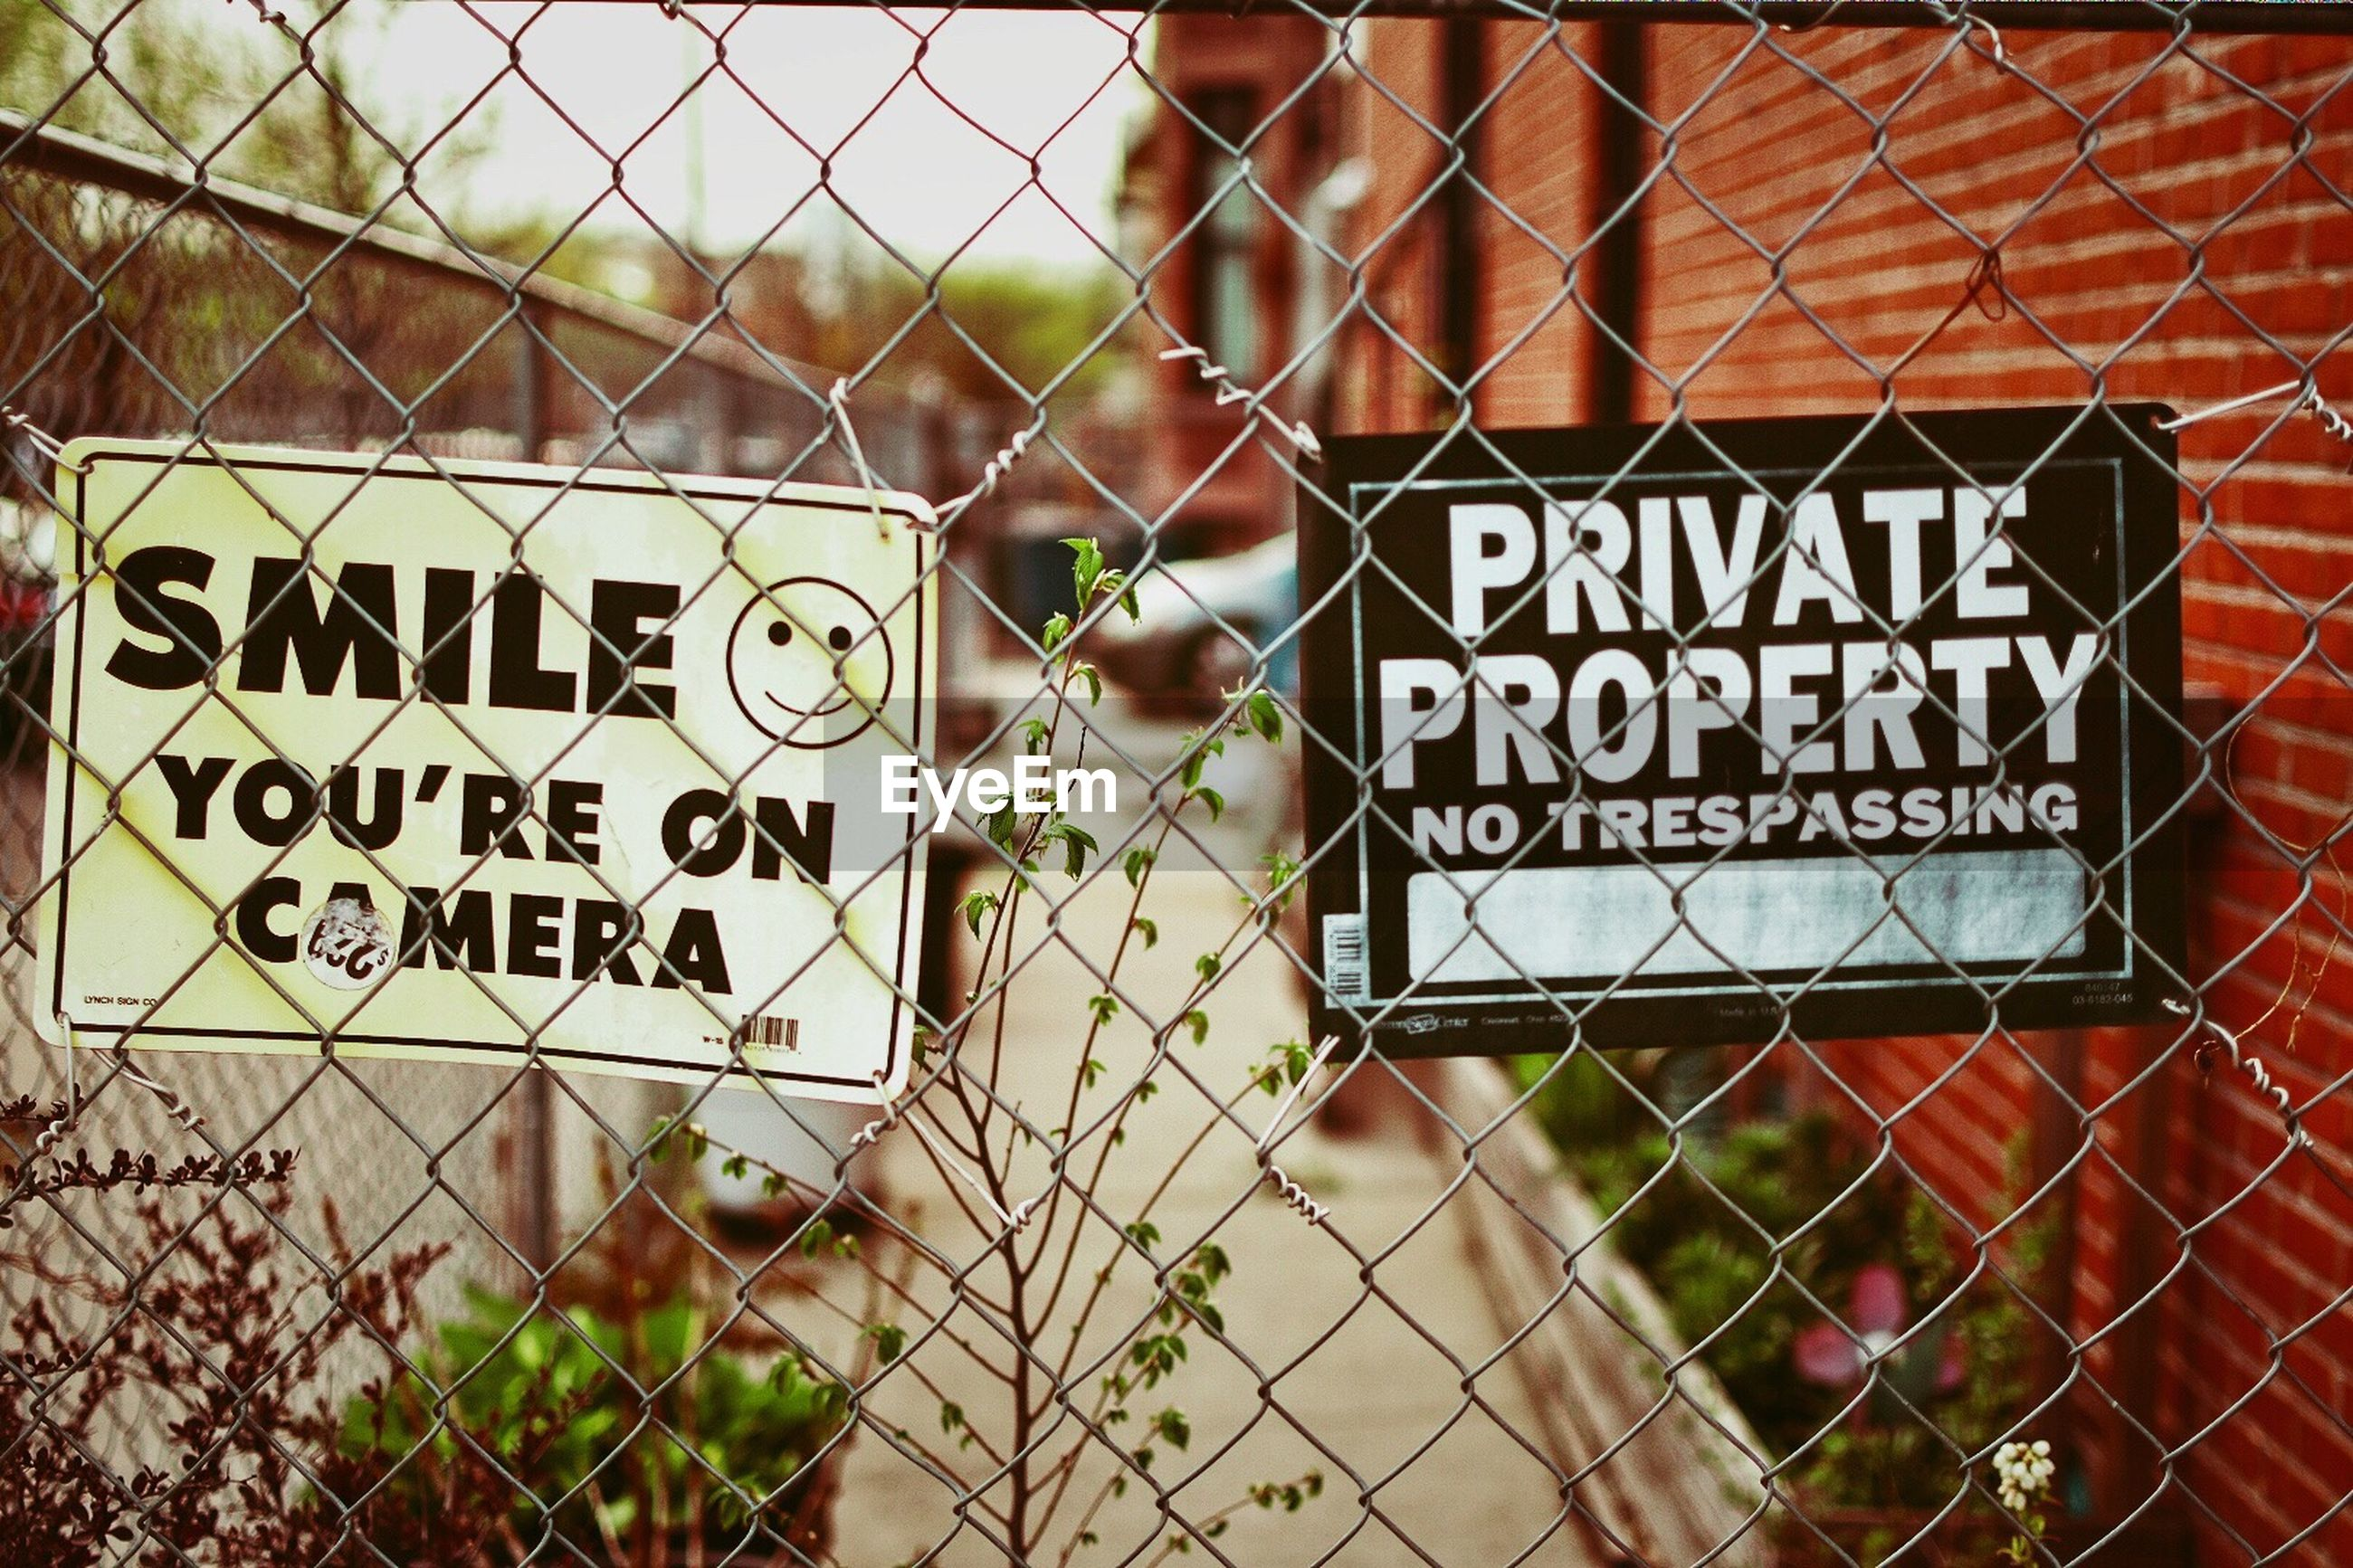 CLOSE-UP OF WARNING SIGN ON CHAINLINK FENCE